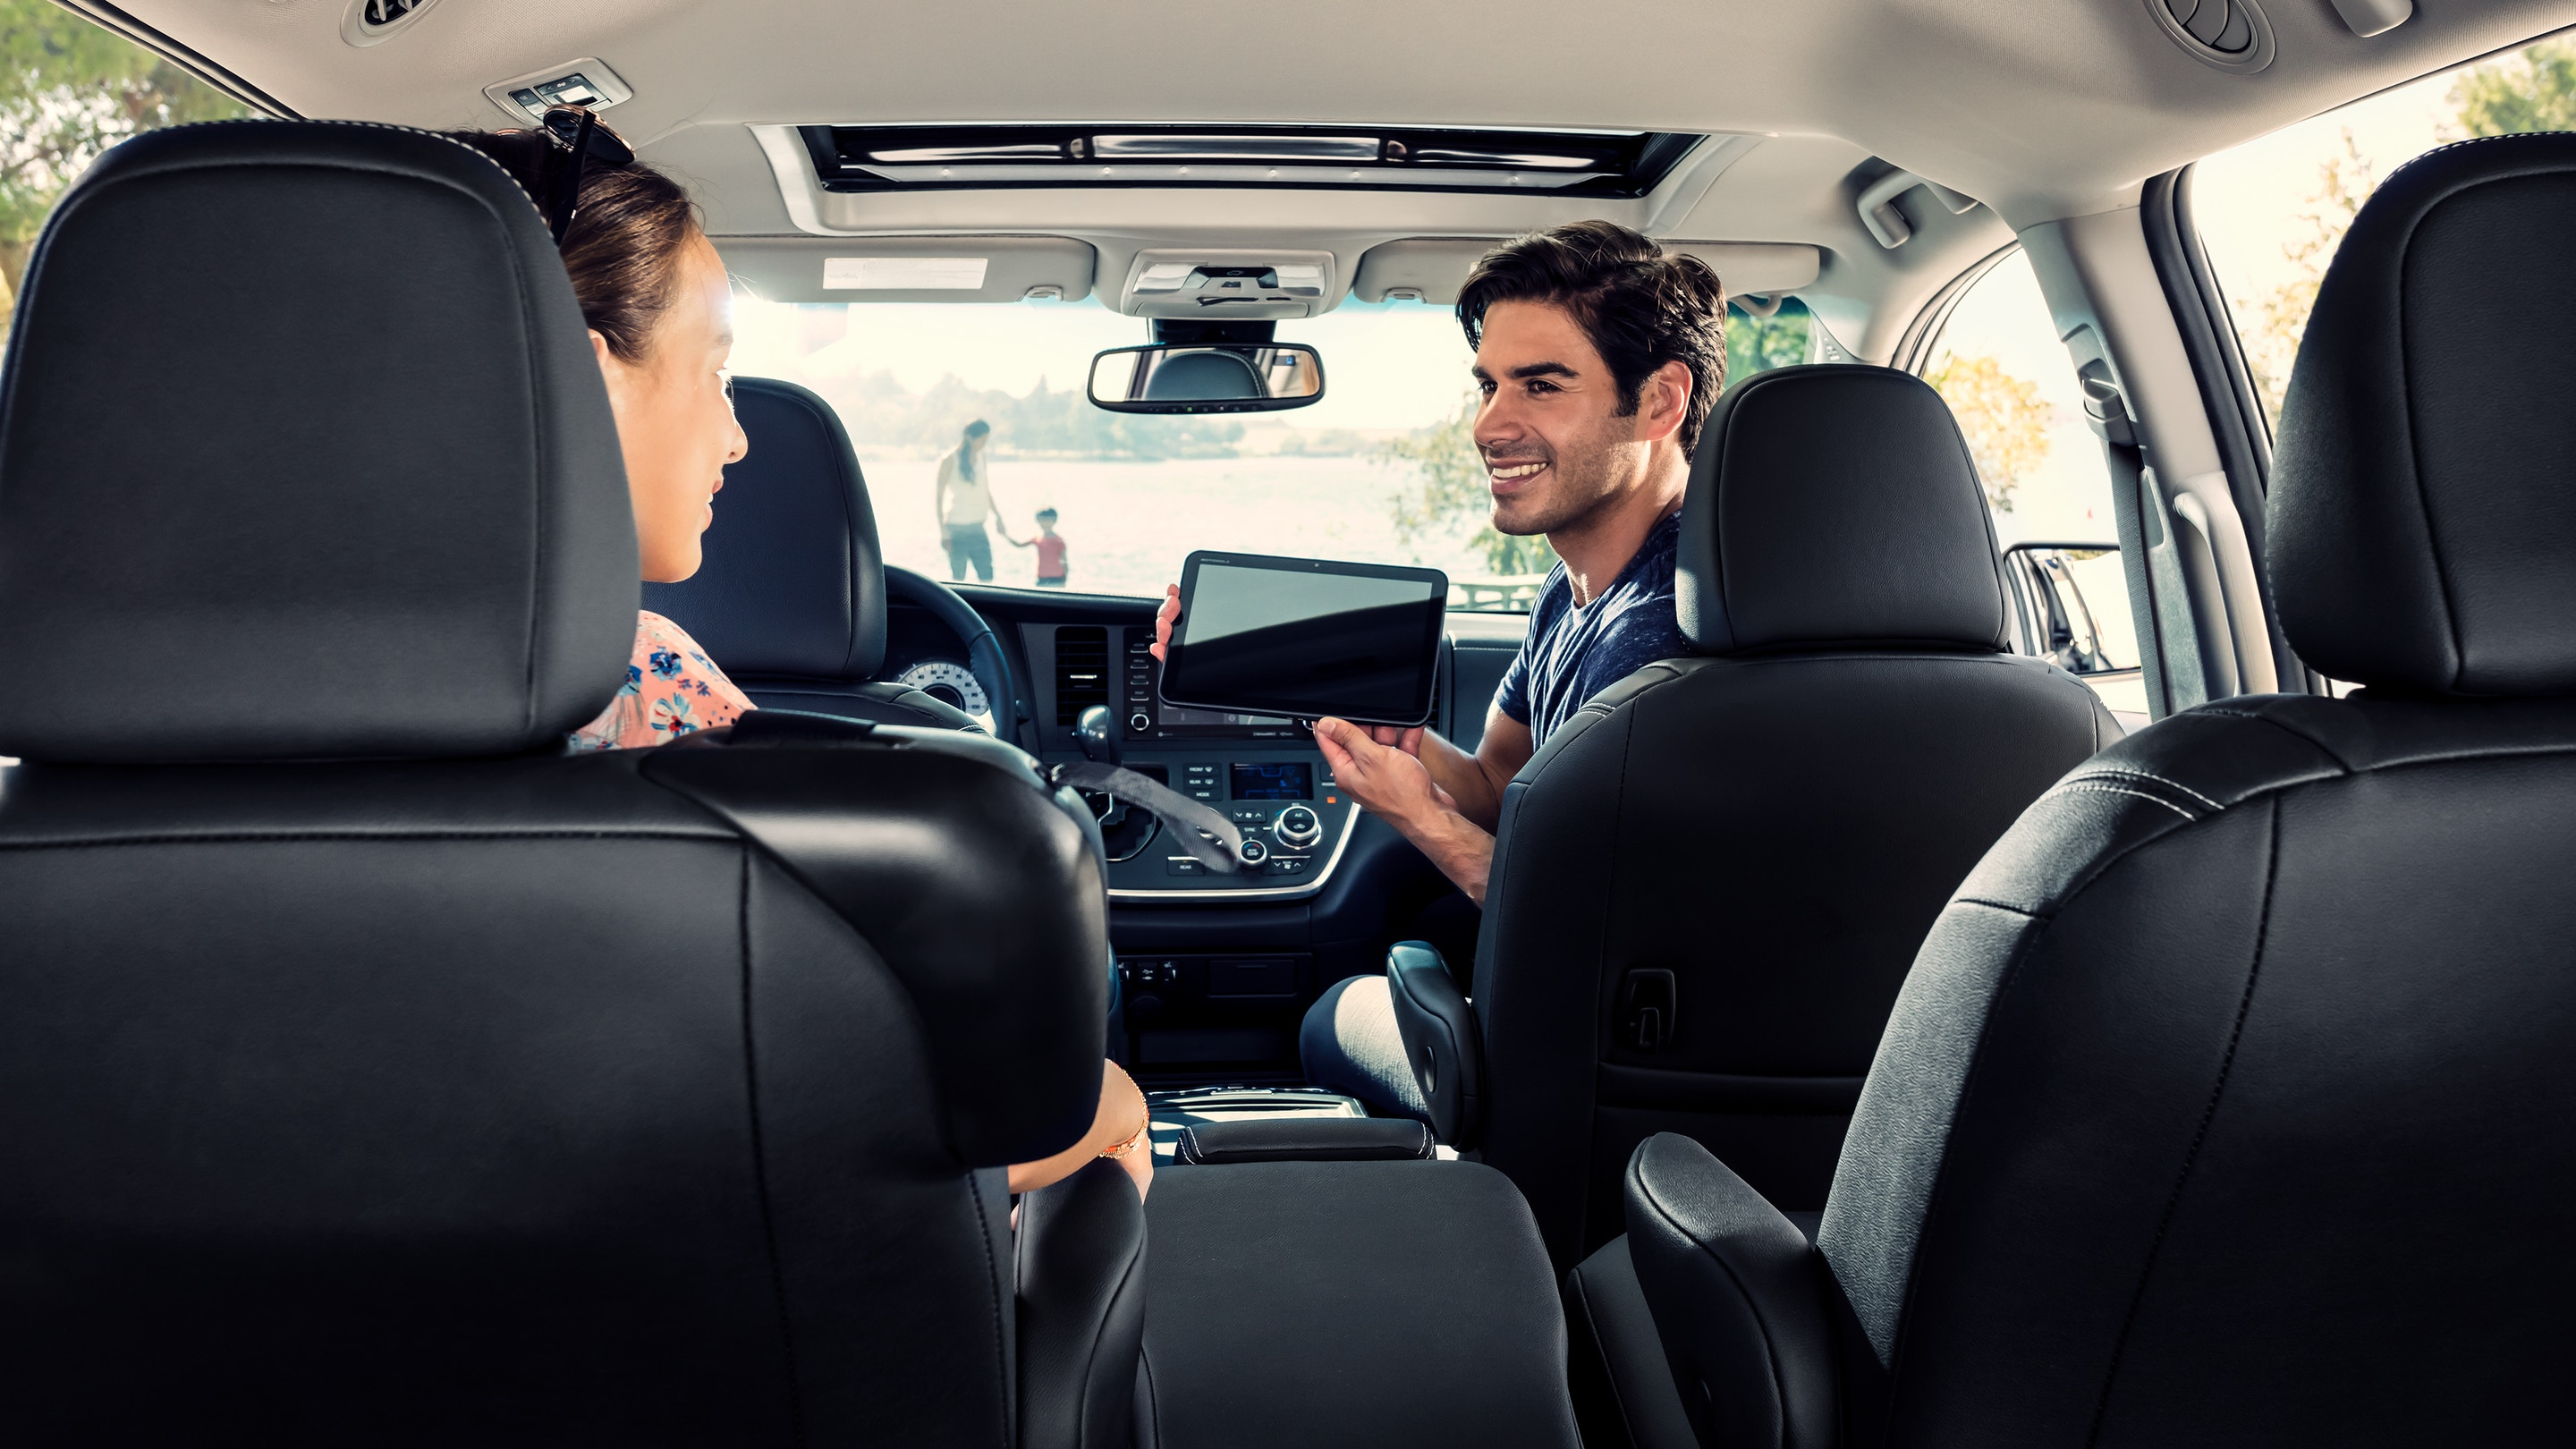 Stay Safe in the 2020 Toyota Sienna